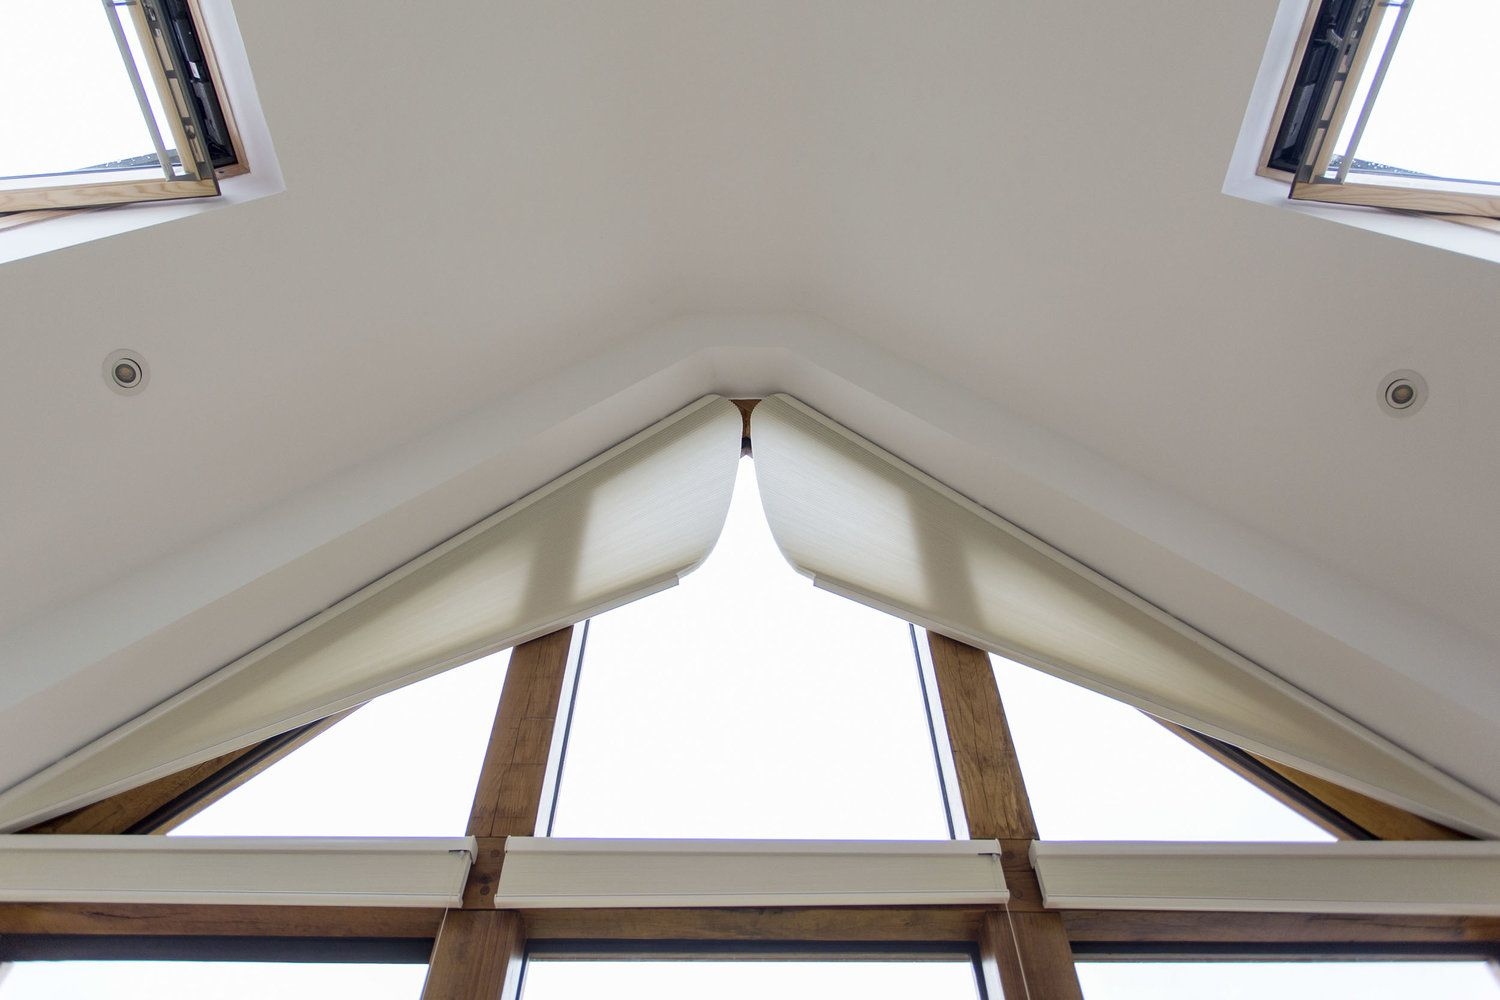 Gable end window ideas  this leicestershire newbuild has a doubleheight glazed gable with